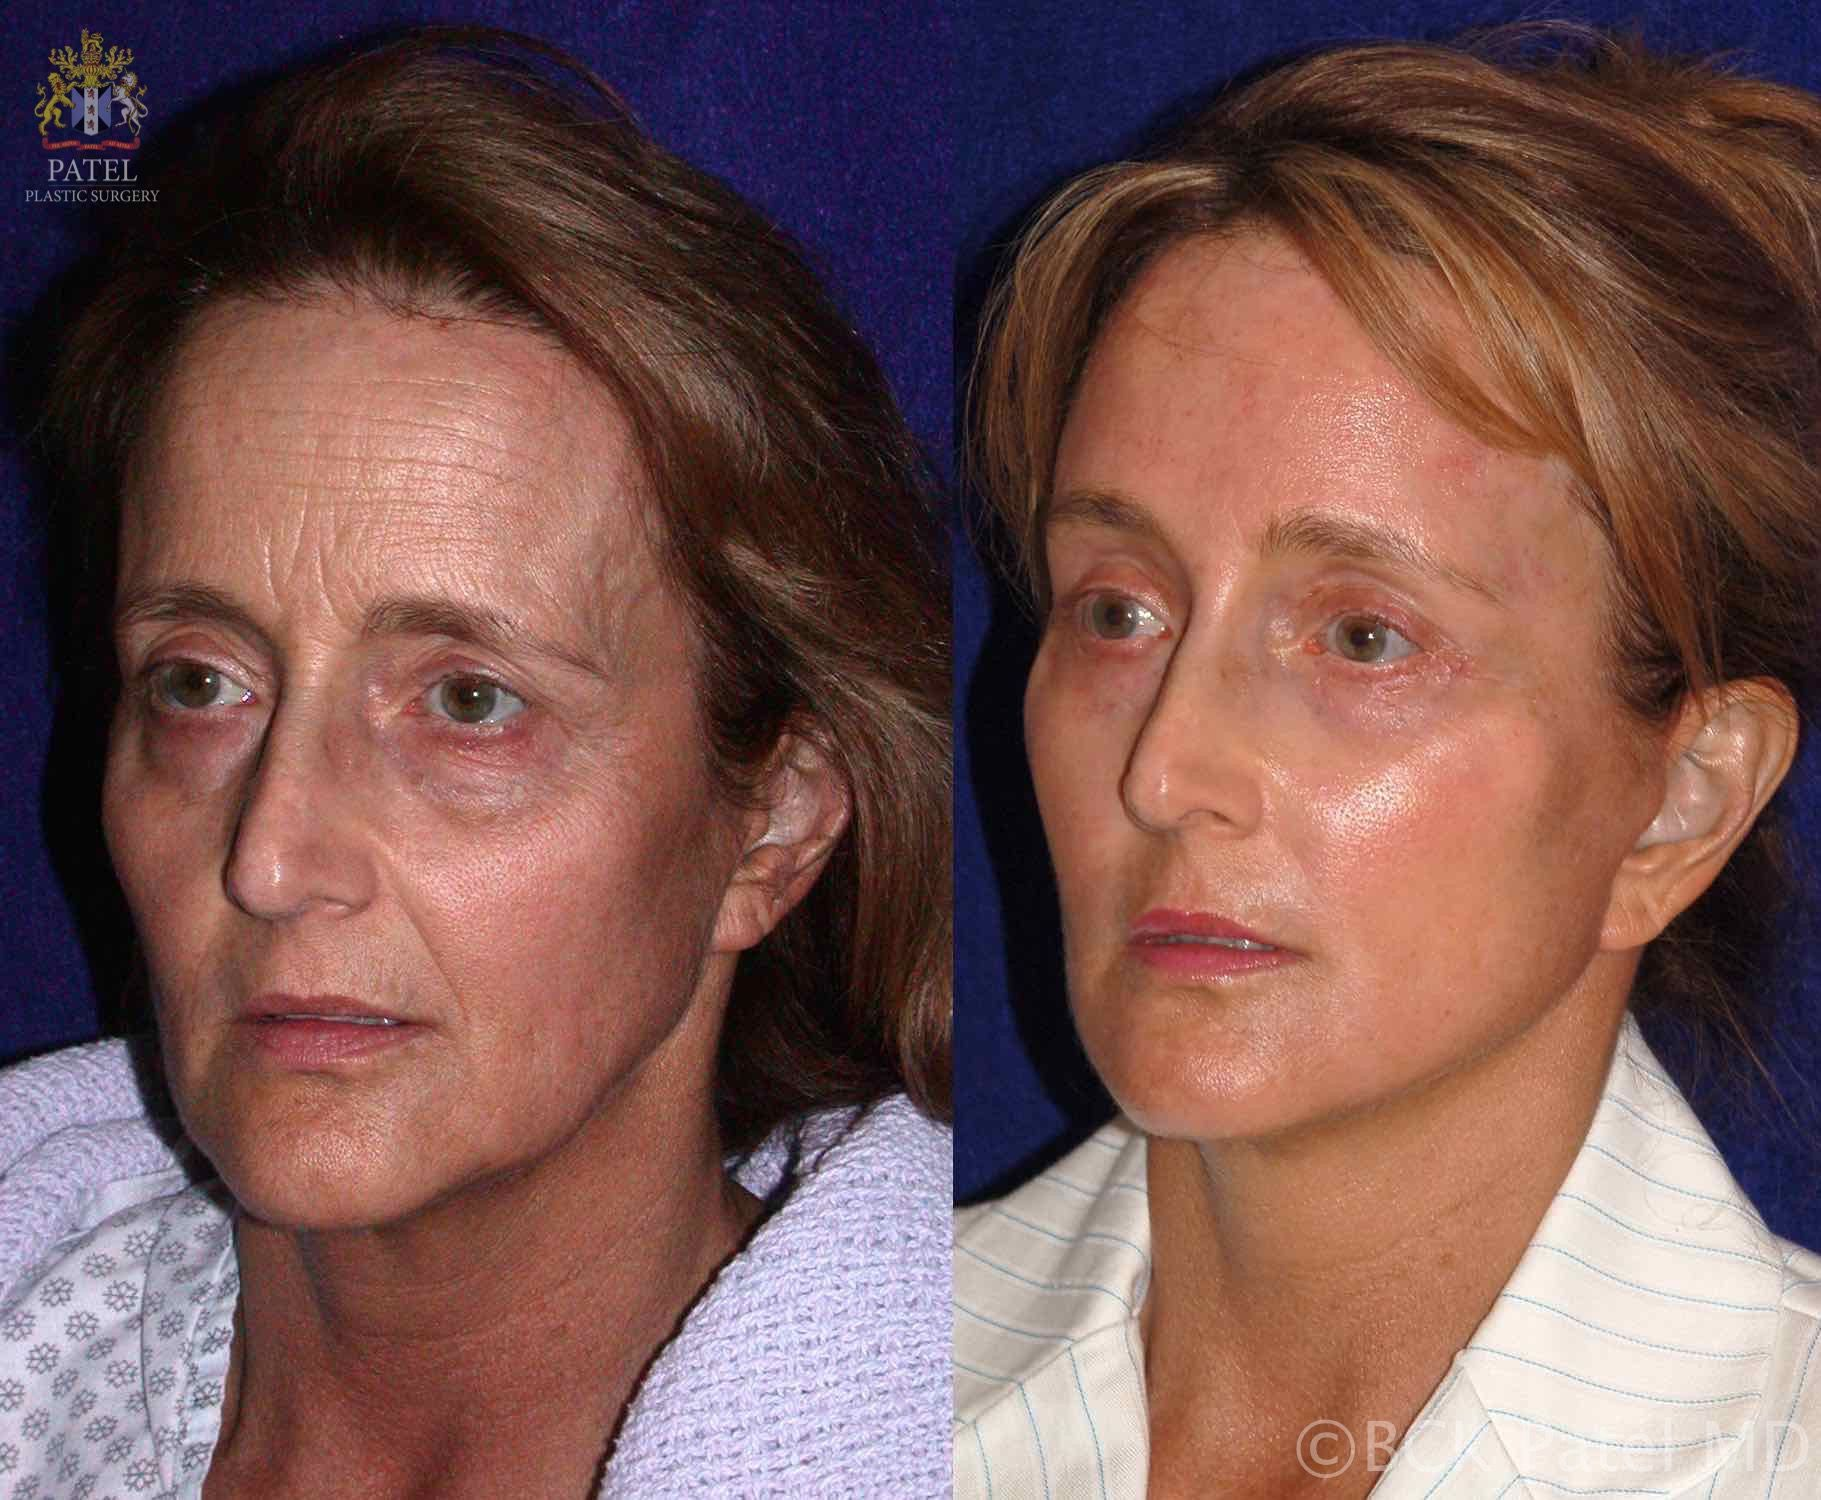 Beautiful improvement in the face skinin terms of wrinkles and lines after using the fractionated CO2 laser. BCK Patel MD, FRCS, London, Salt Lake City St George